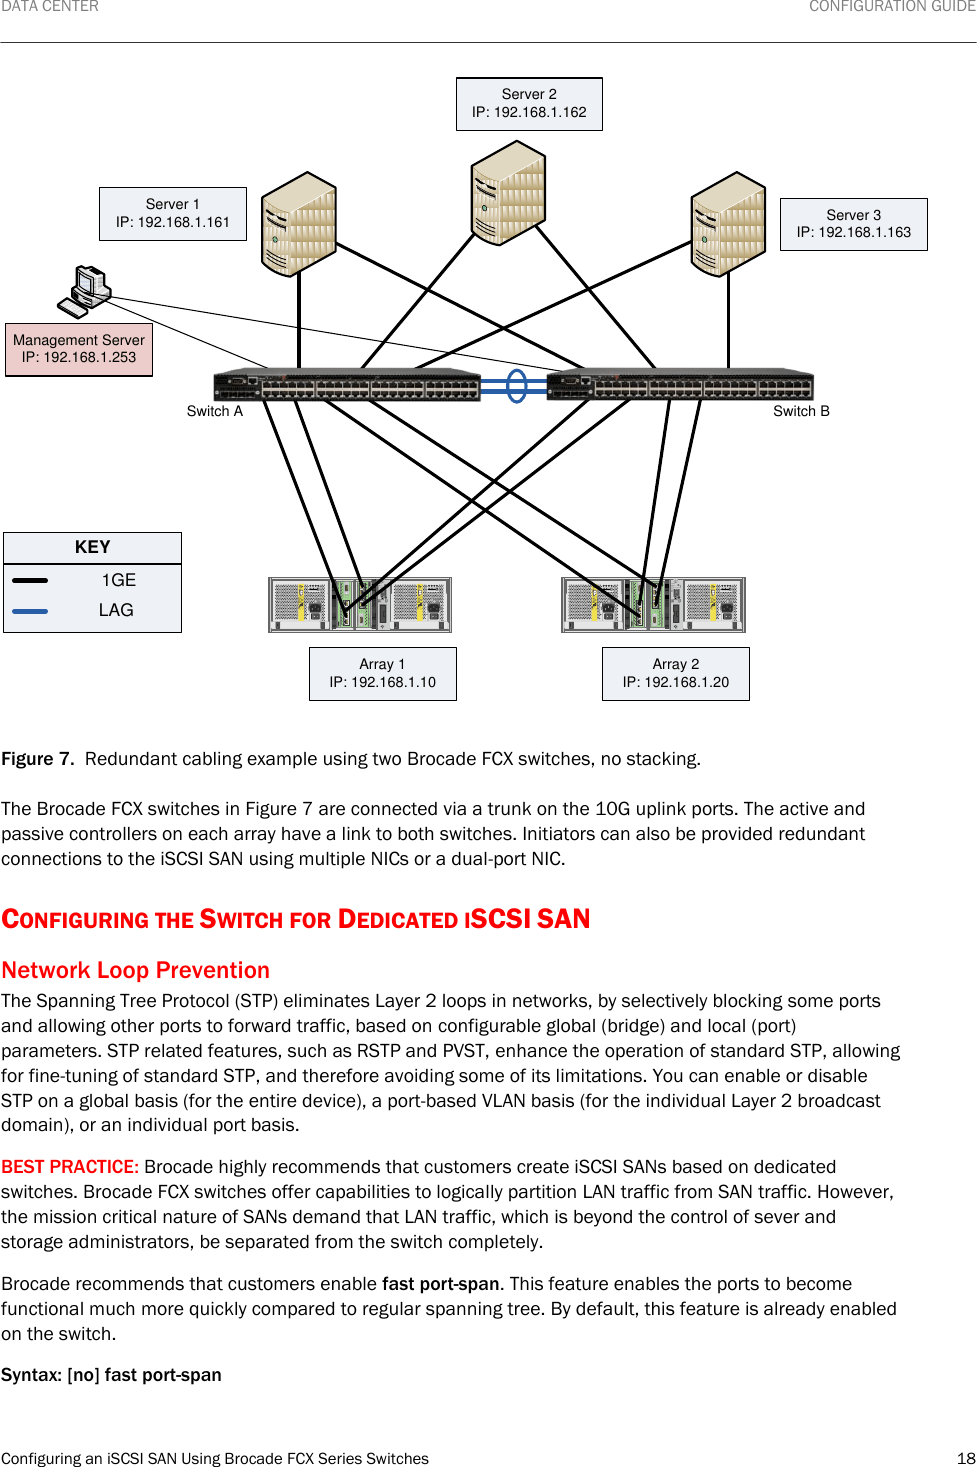 hight resolution of ruckus configuring an iscsi storage area network using brocade fcx series switches for equallogic environments i scsi equal logic scsiconfig guide ga cg 285